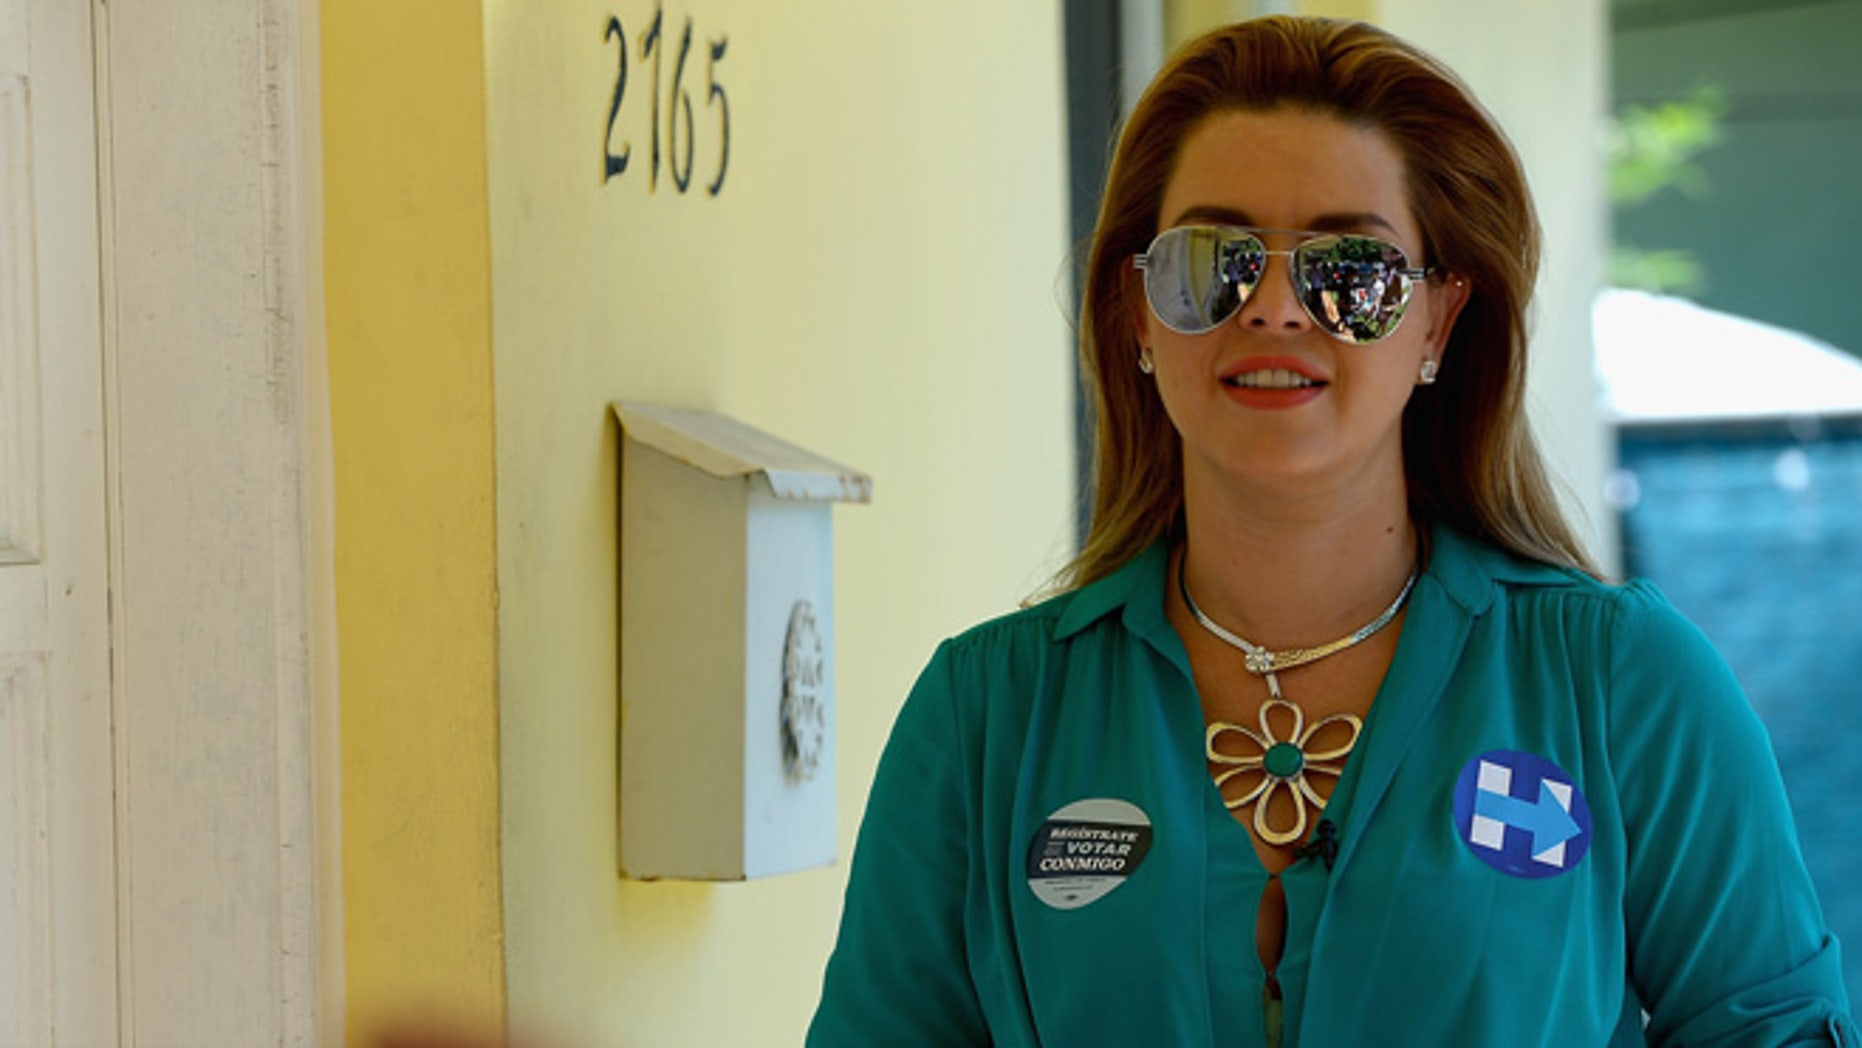 MIAMI, FL - AUGUST 20:  Alicia Machado campaigns for Hillary Clinton on August 20, 2016 in Miami, Florida.  (Photo by Gustavo Caballero/Getty Images)